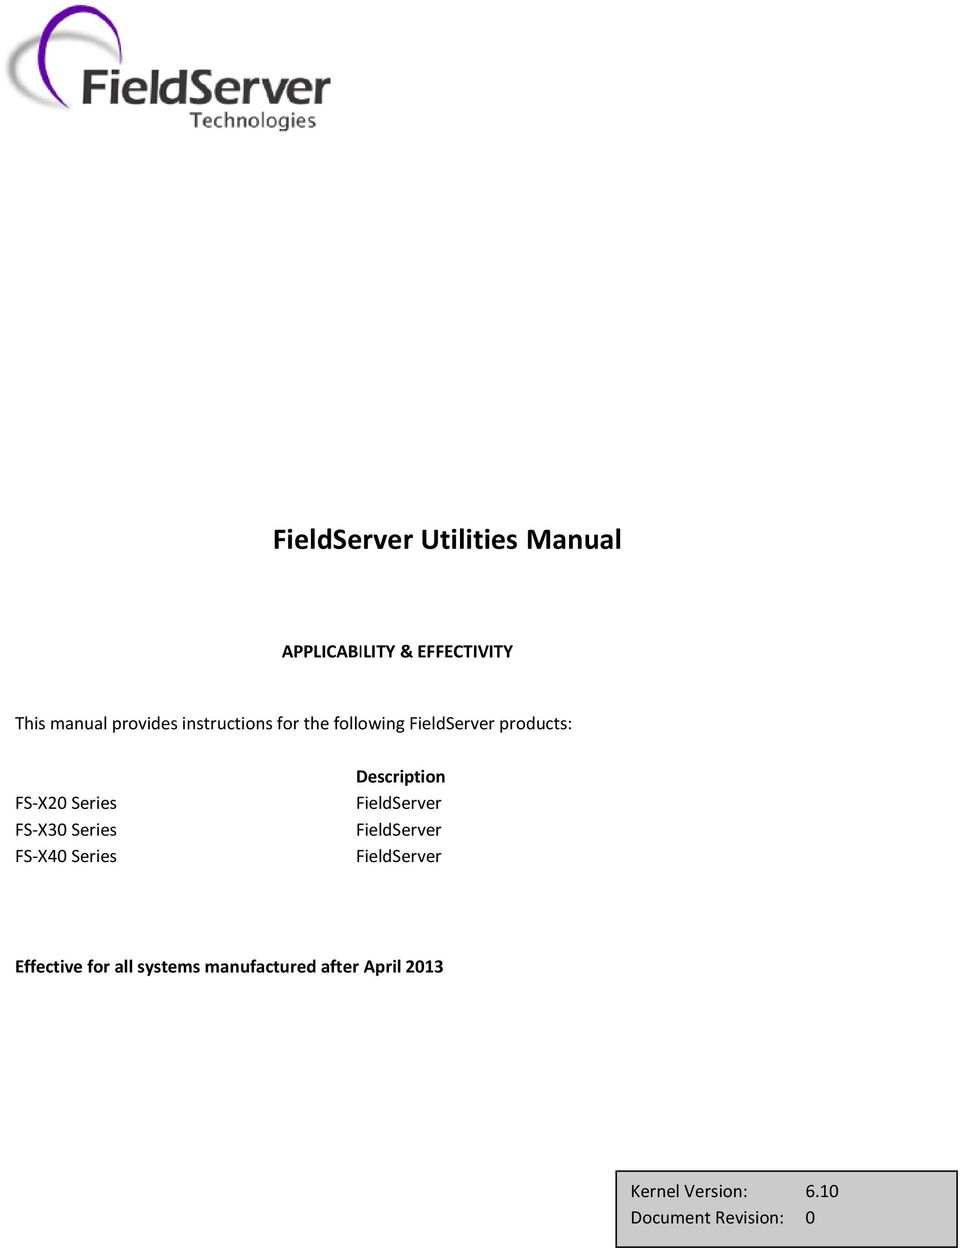 Fieldserver Utilities Manual Pdf Wiring Diagram Effective For All Systems Manufactured After April 2013 The Instructions Are 2